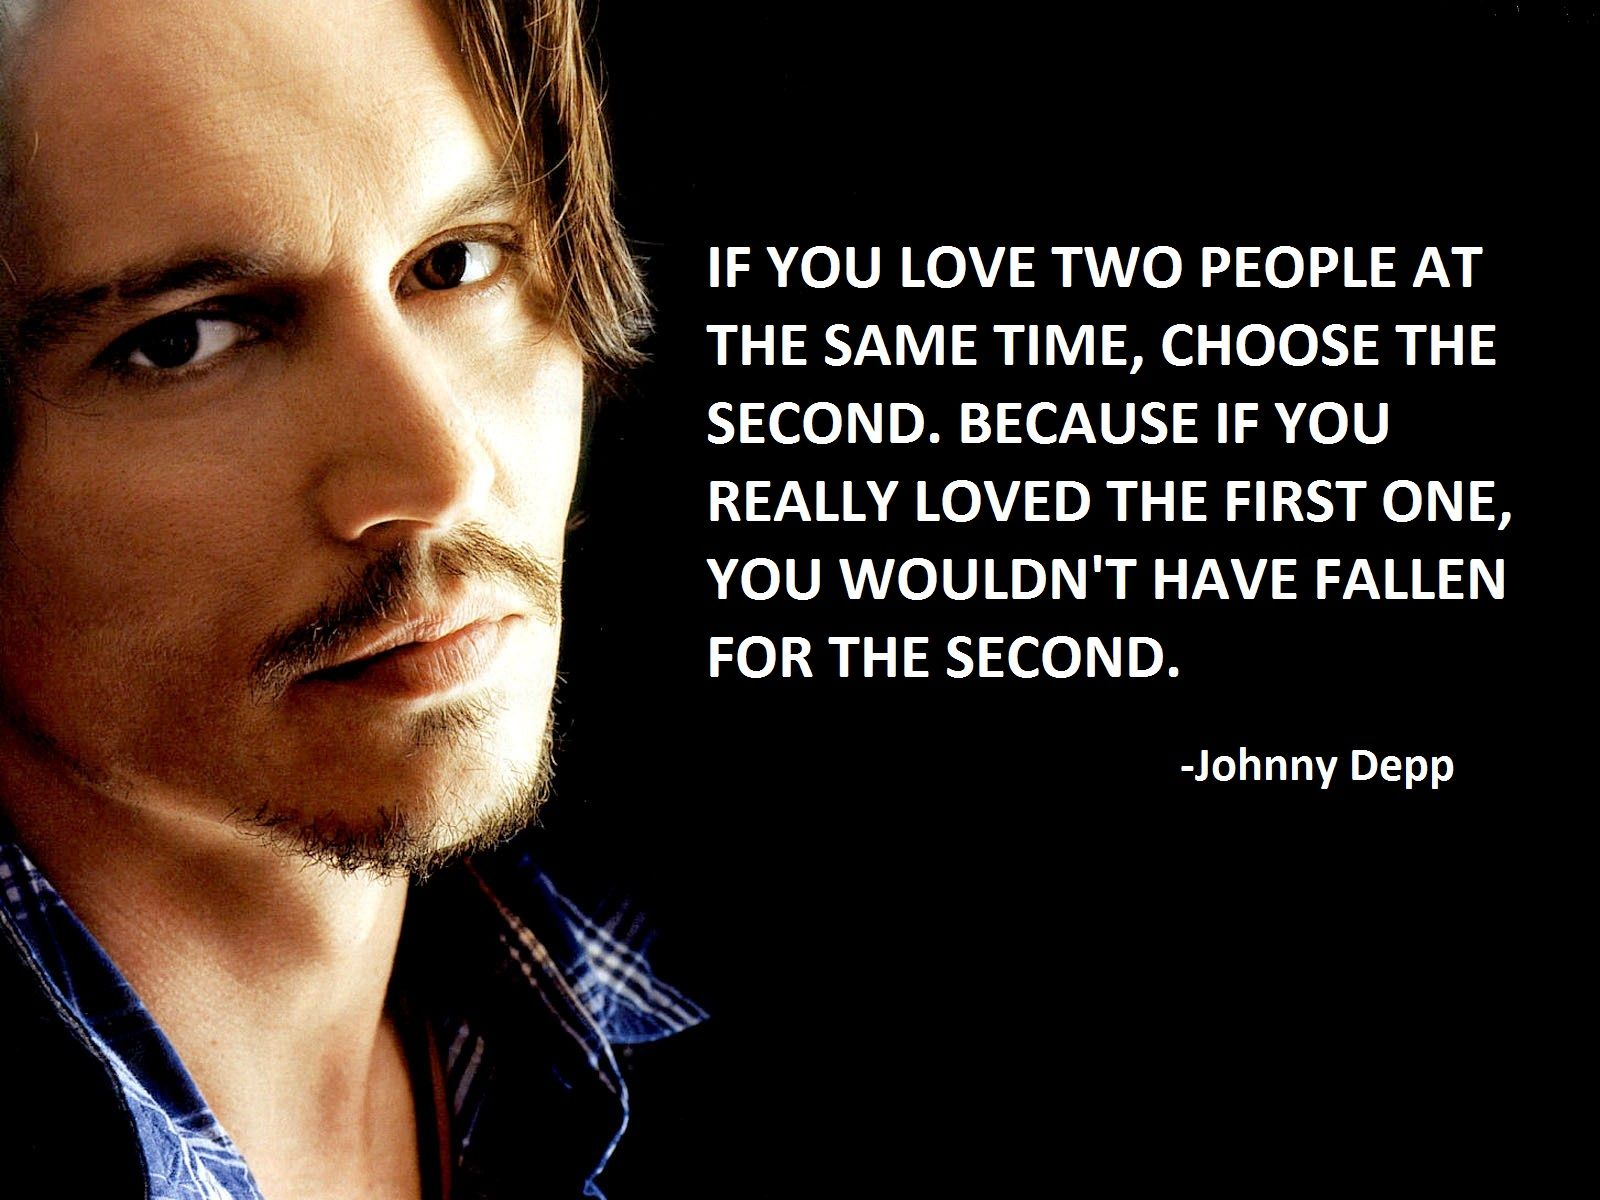 Johnny Depp Love Quotes Mesmerizing Pirates Of The Caribbean Quotes  Johnny Depp Quotes From Pirates Of